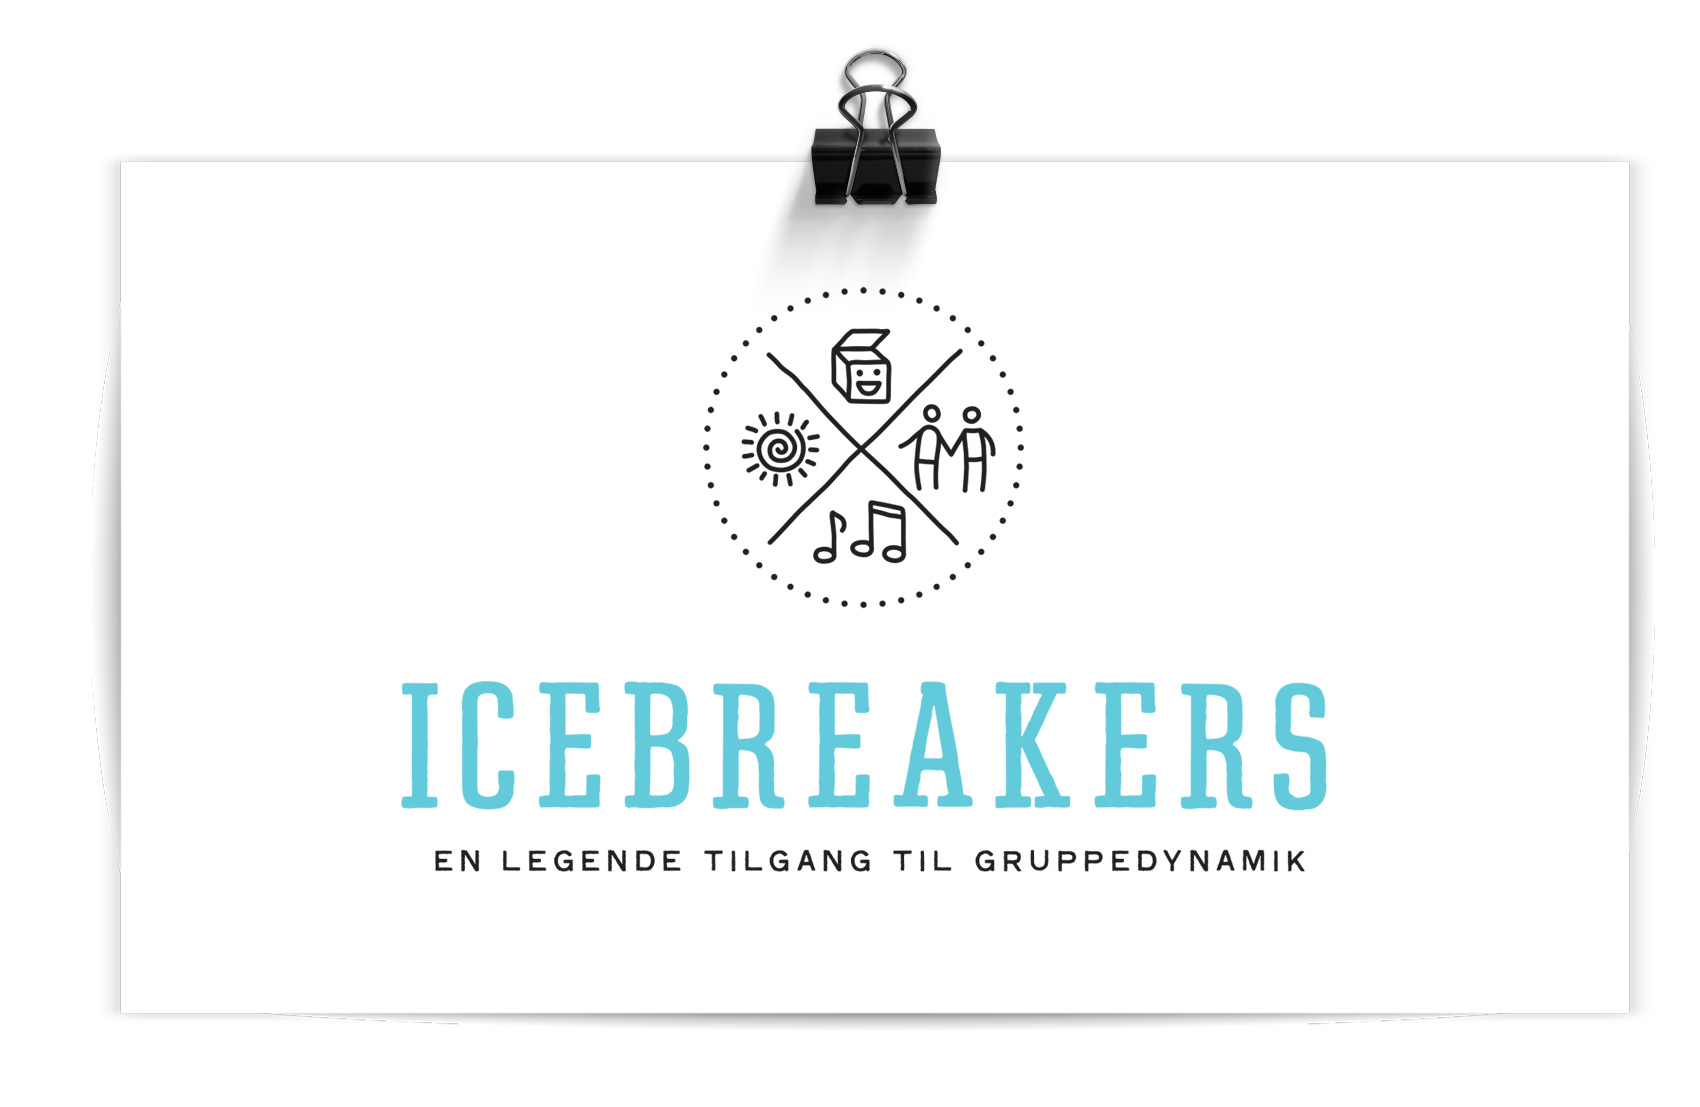 ICEBREAKERS - icons for the four types of activities